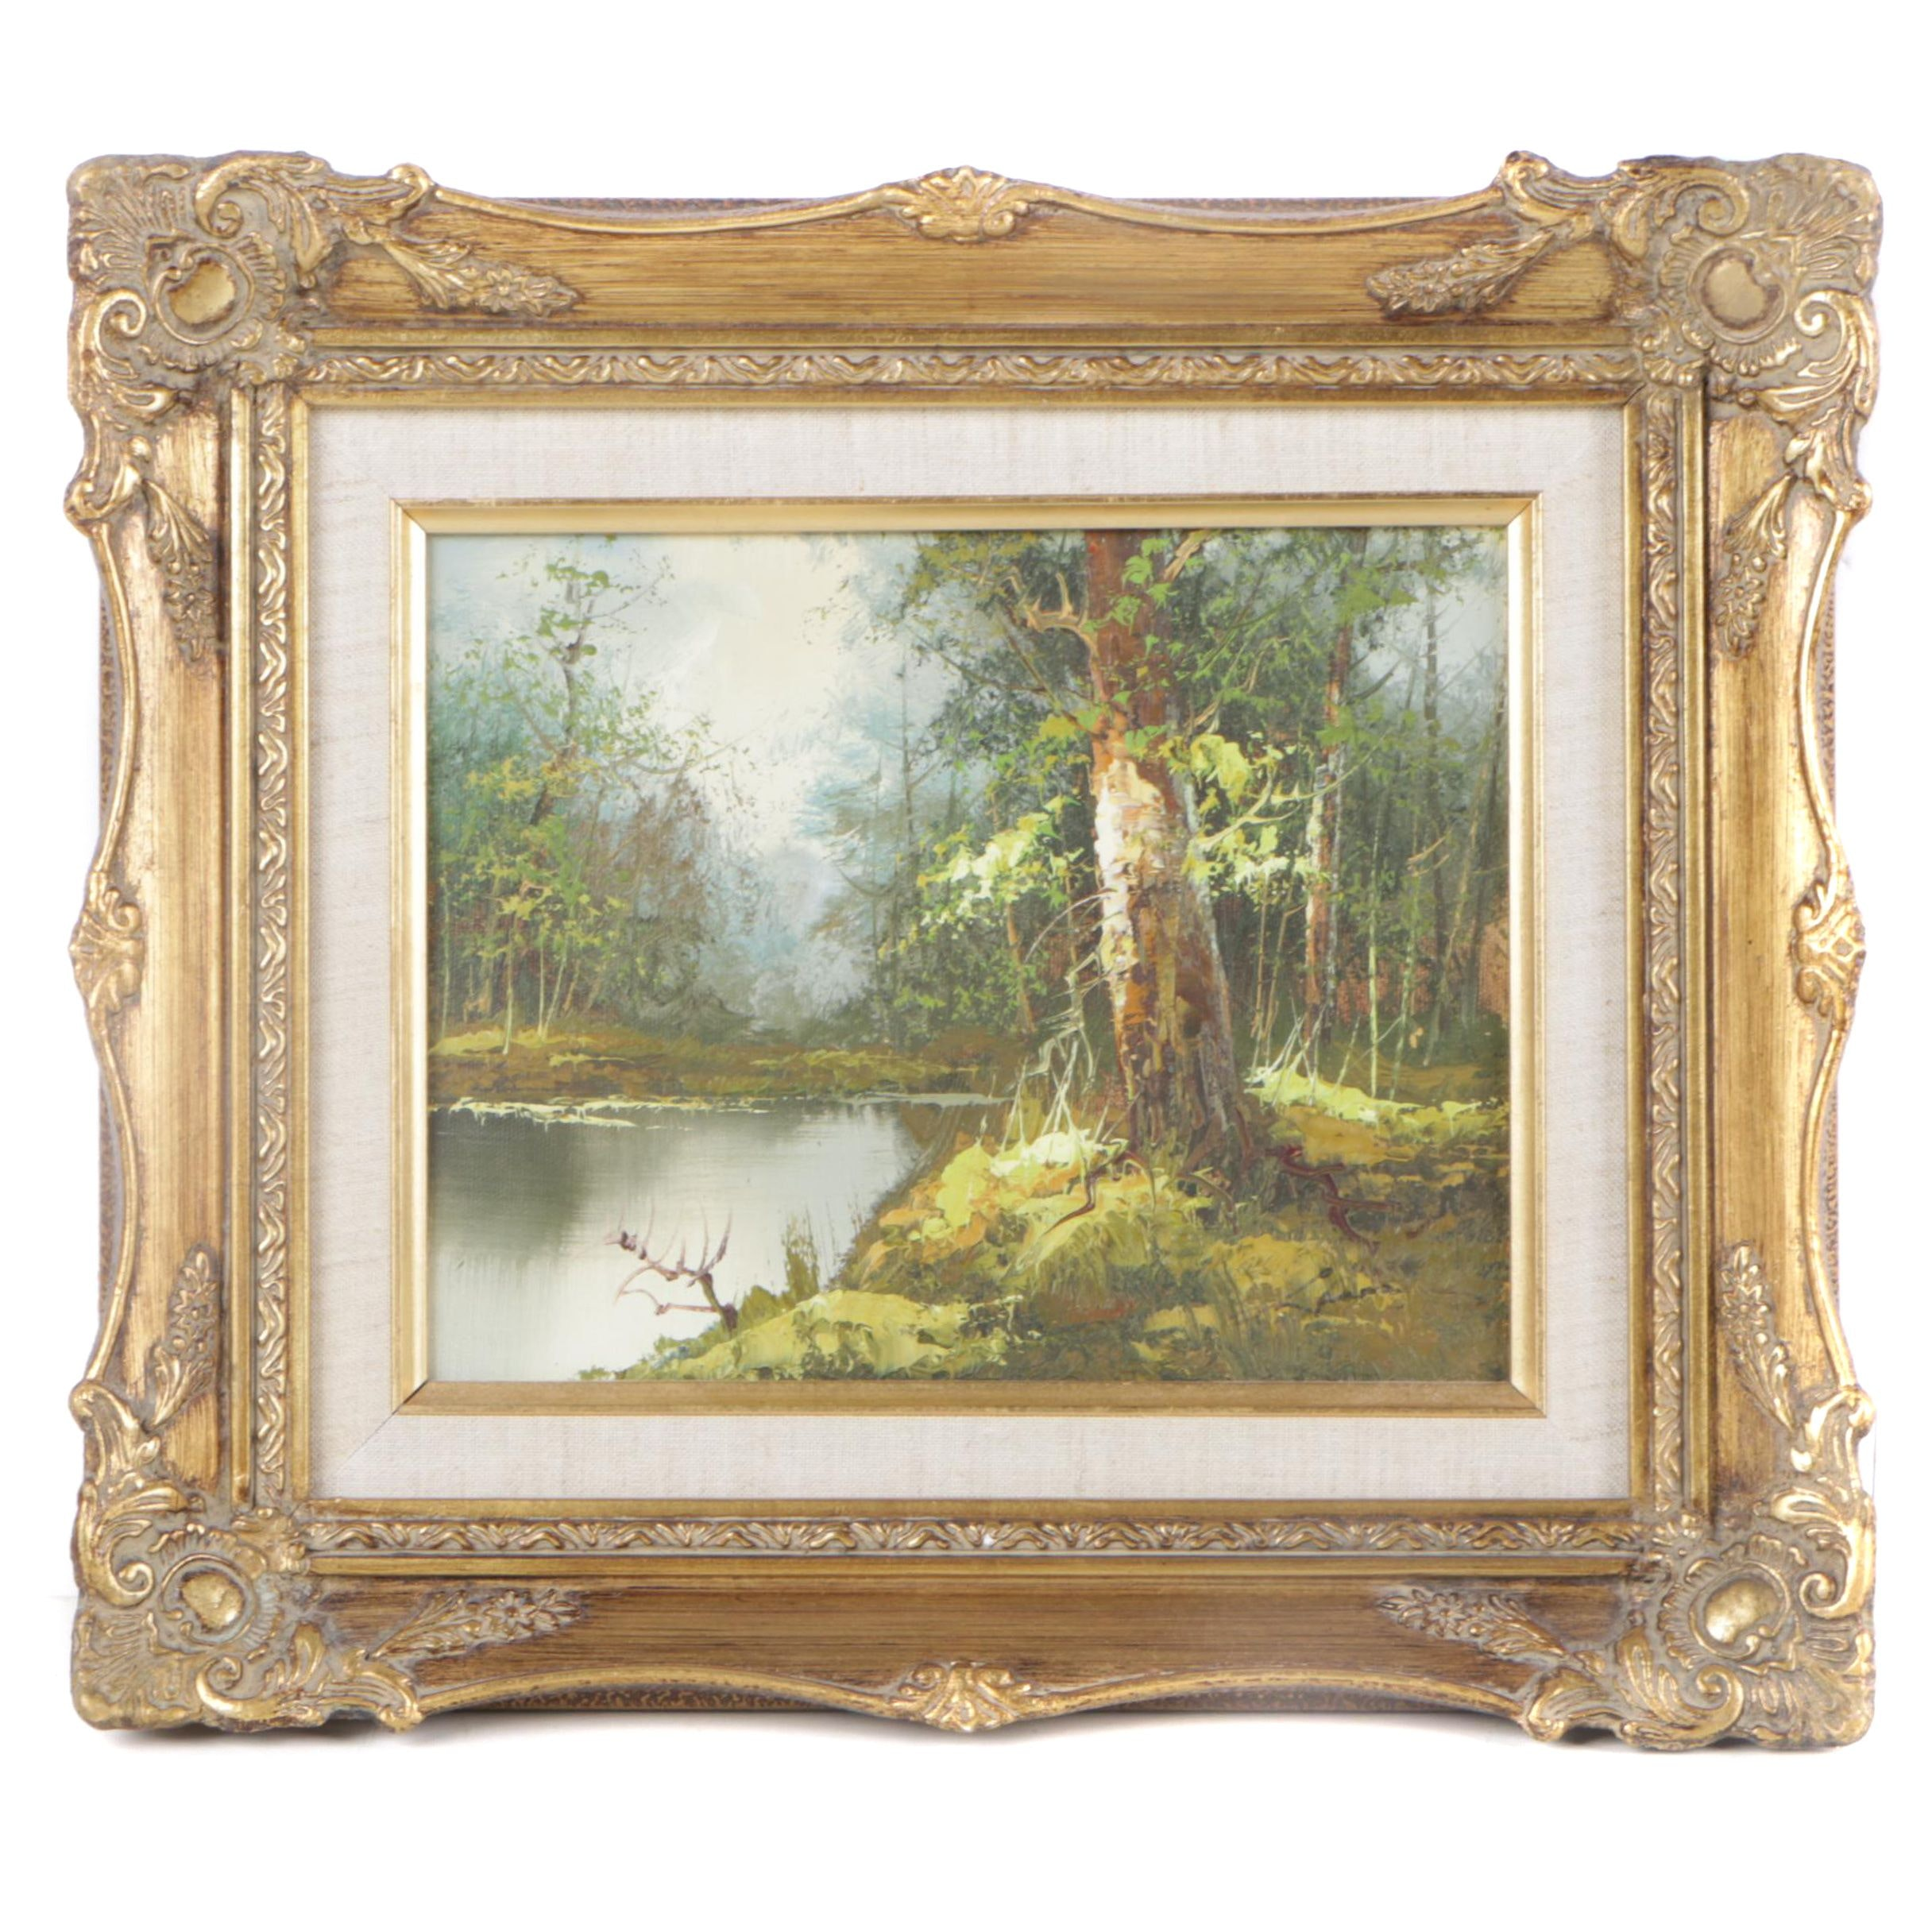 Oil Painting of a Wooded Landscape